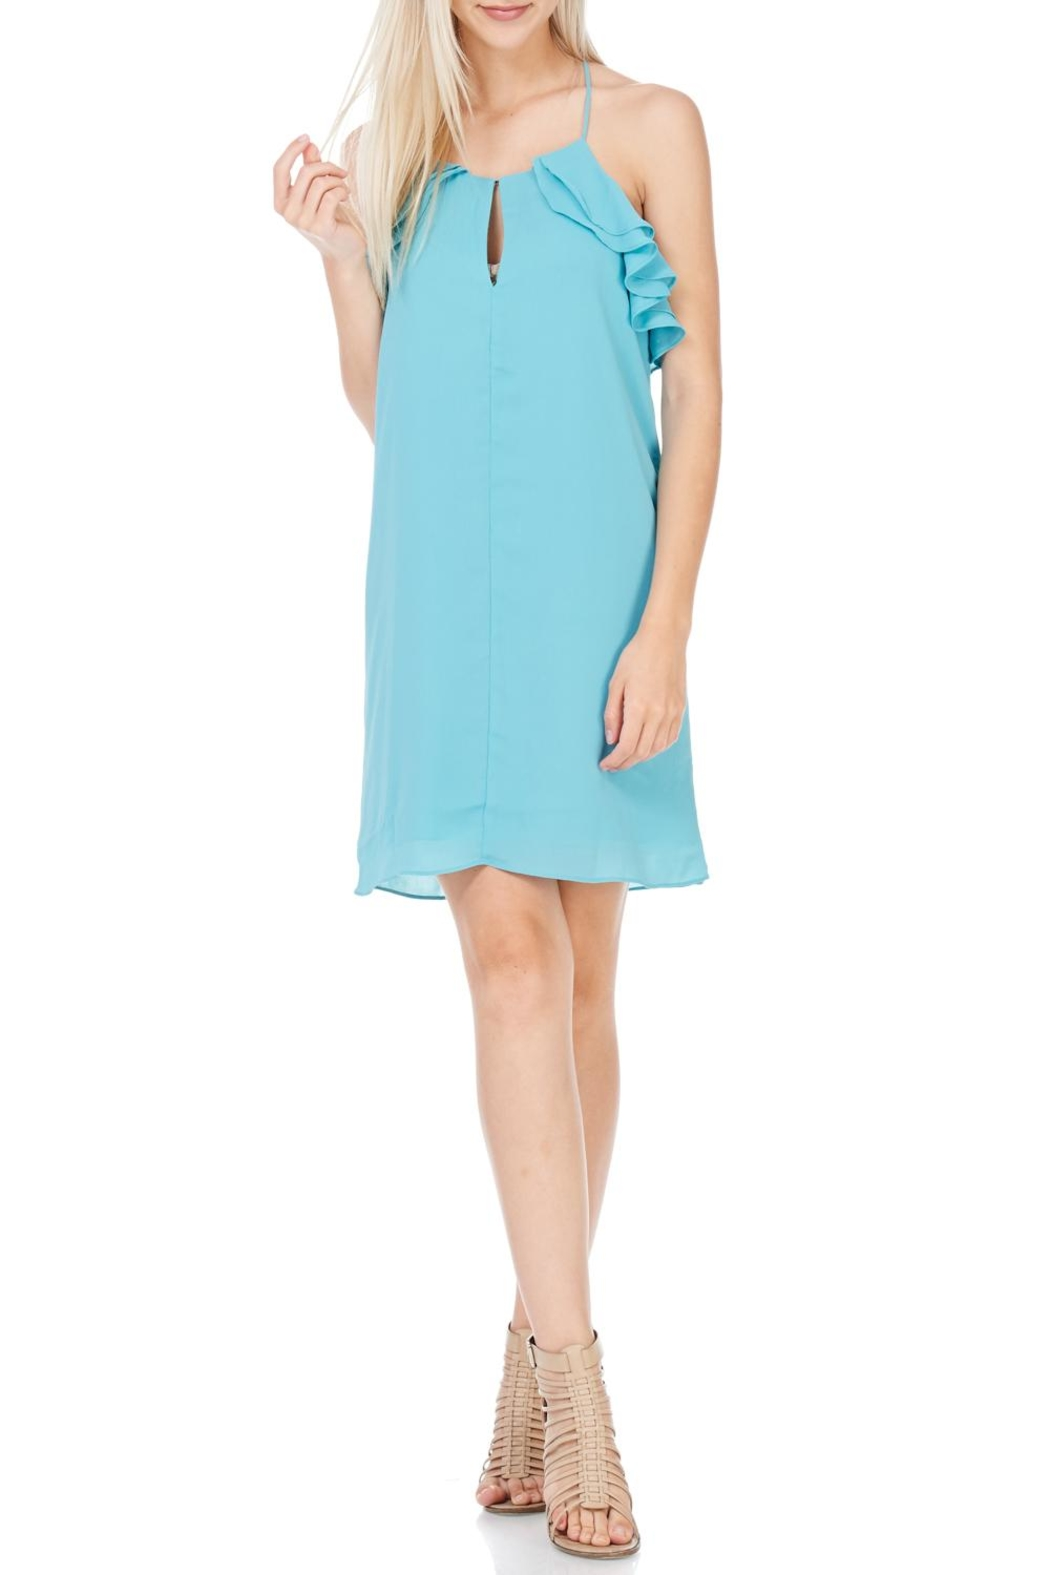 Everly Racerback Lined Dress - Front Cropped Image